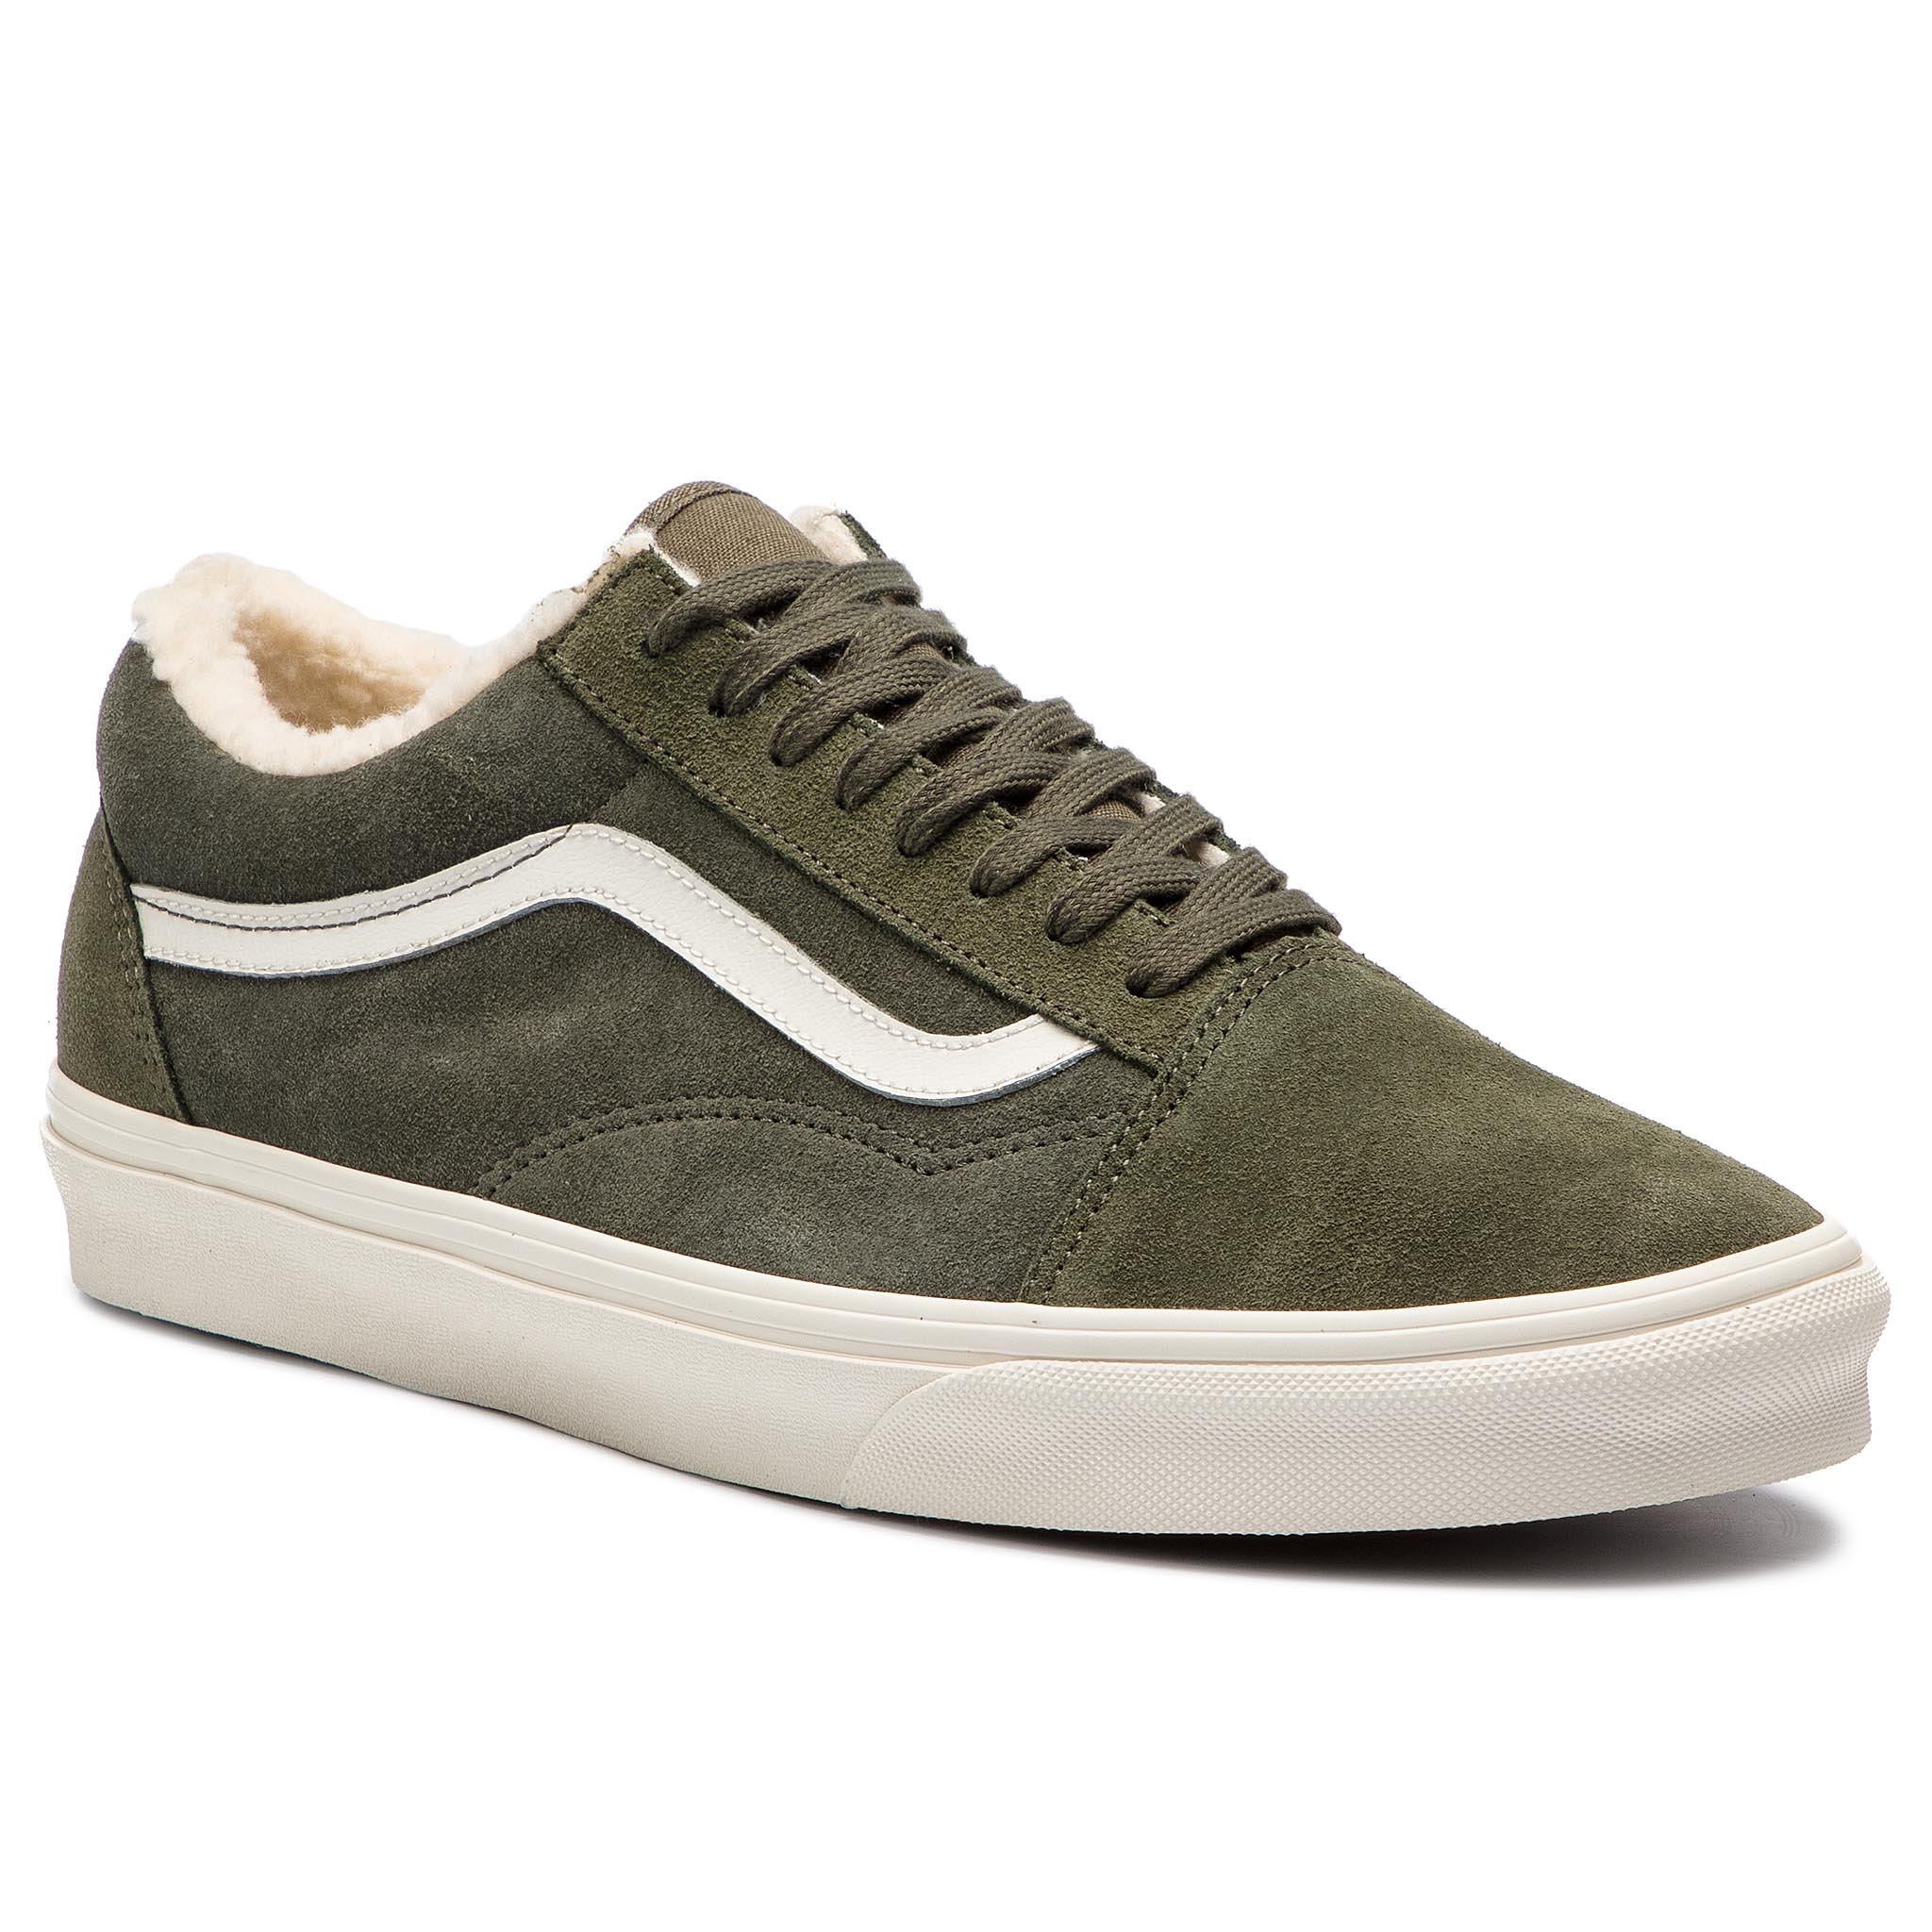 Teniși VANS - Old Skool VN0A38G1ULZ1 (Suede/Sherpa) Grape Leaf